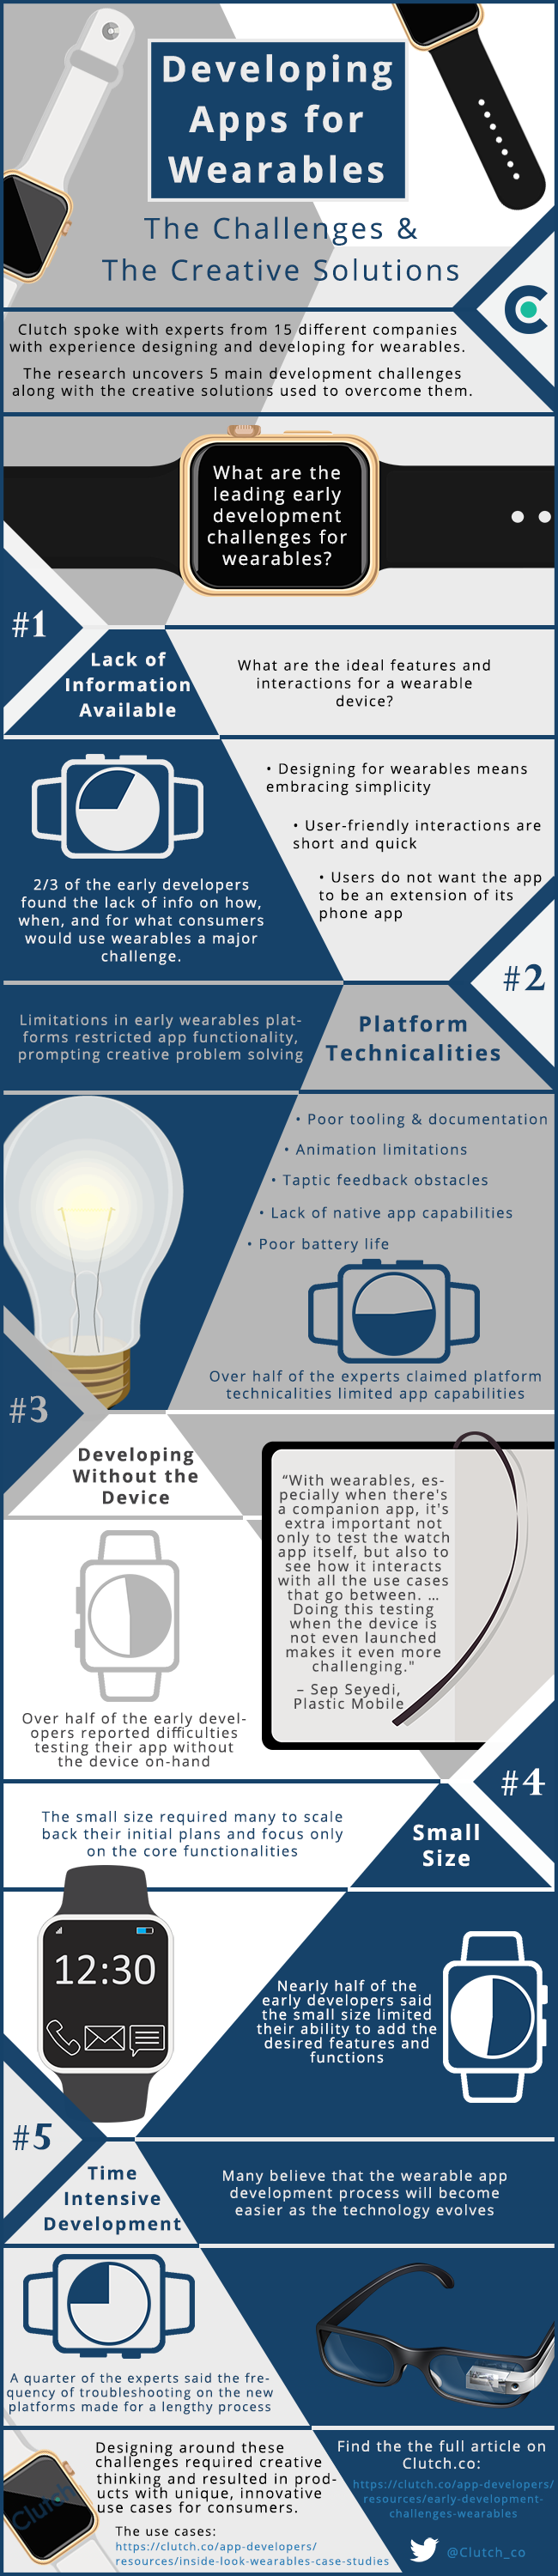 Wearable App Development Challenges Infographic